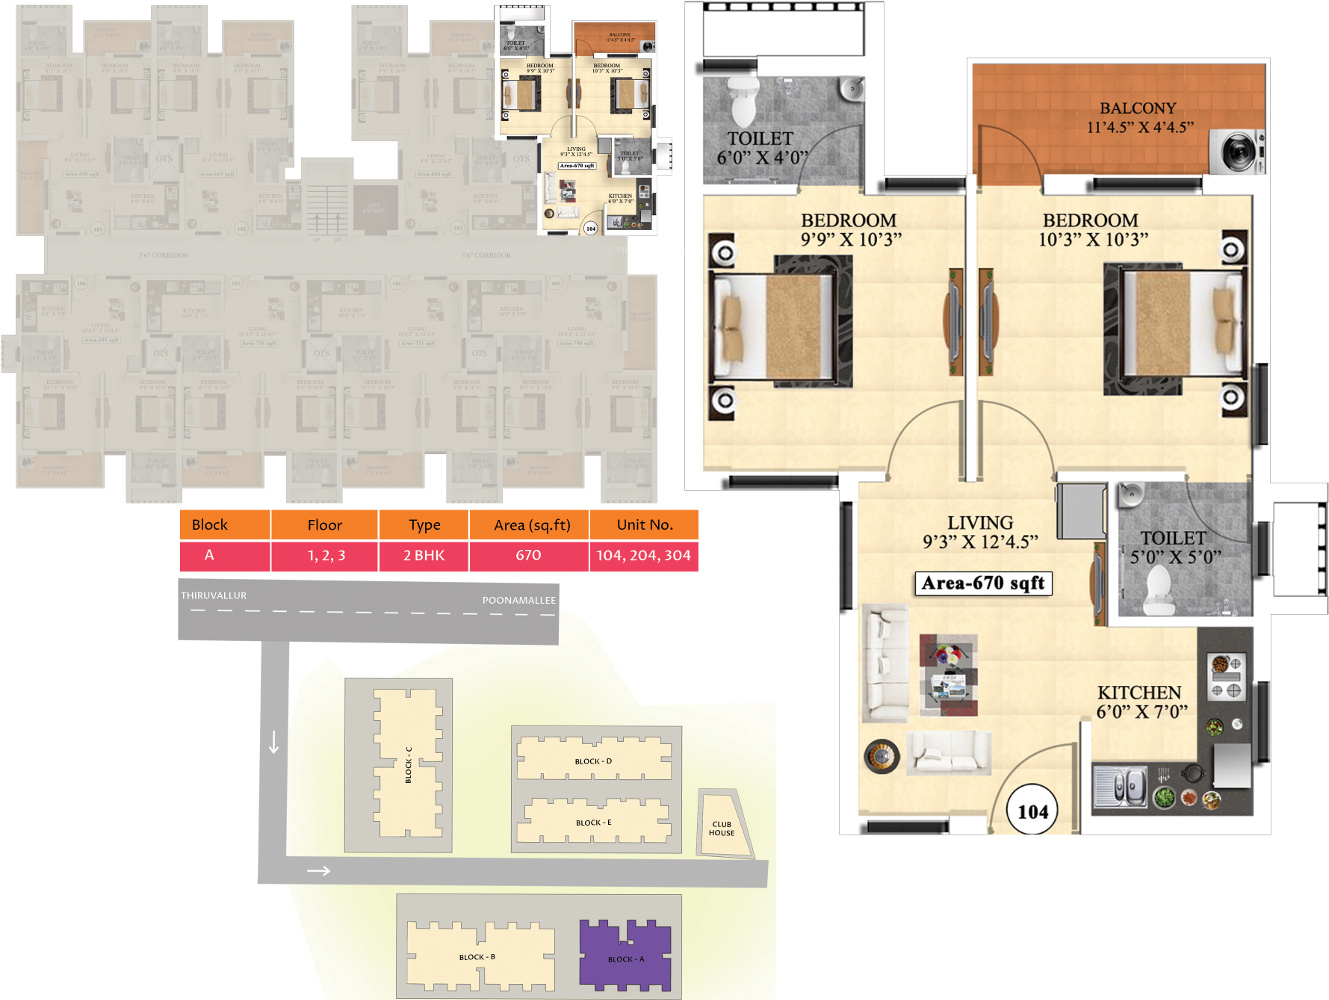 vijay ideal homes in tiruvallur chennai price location